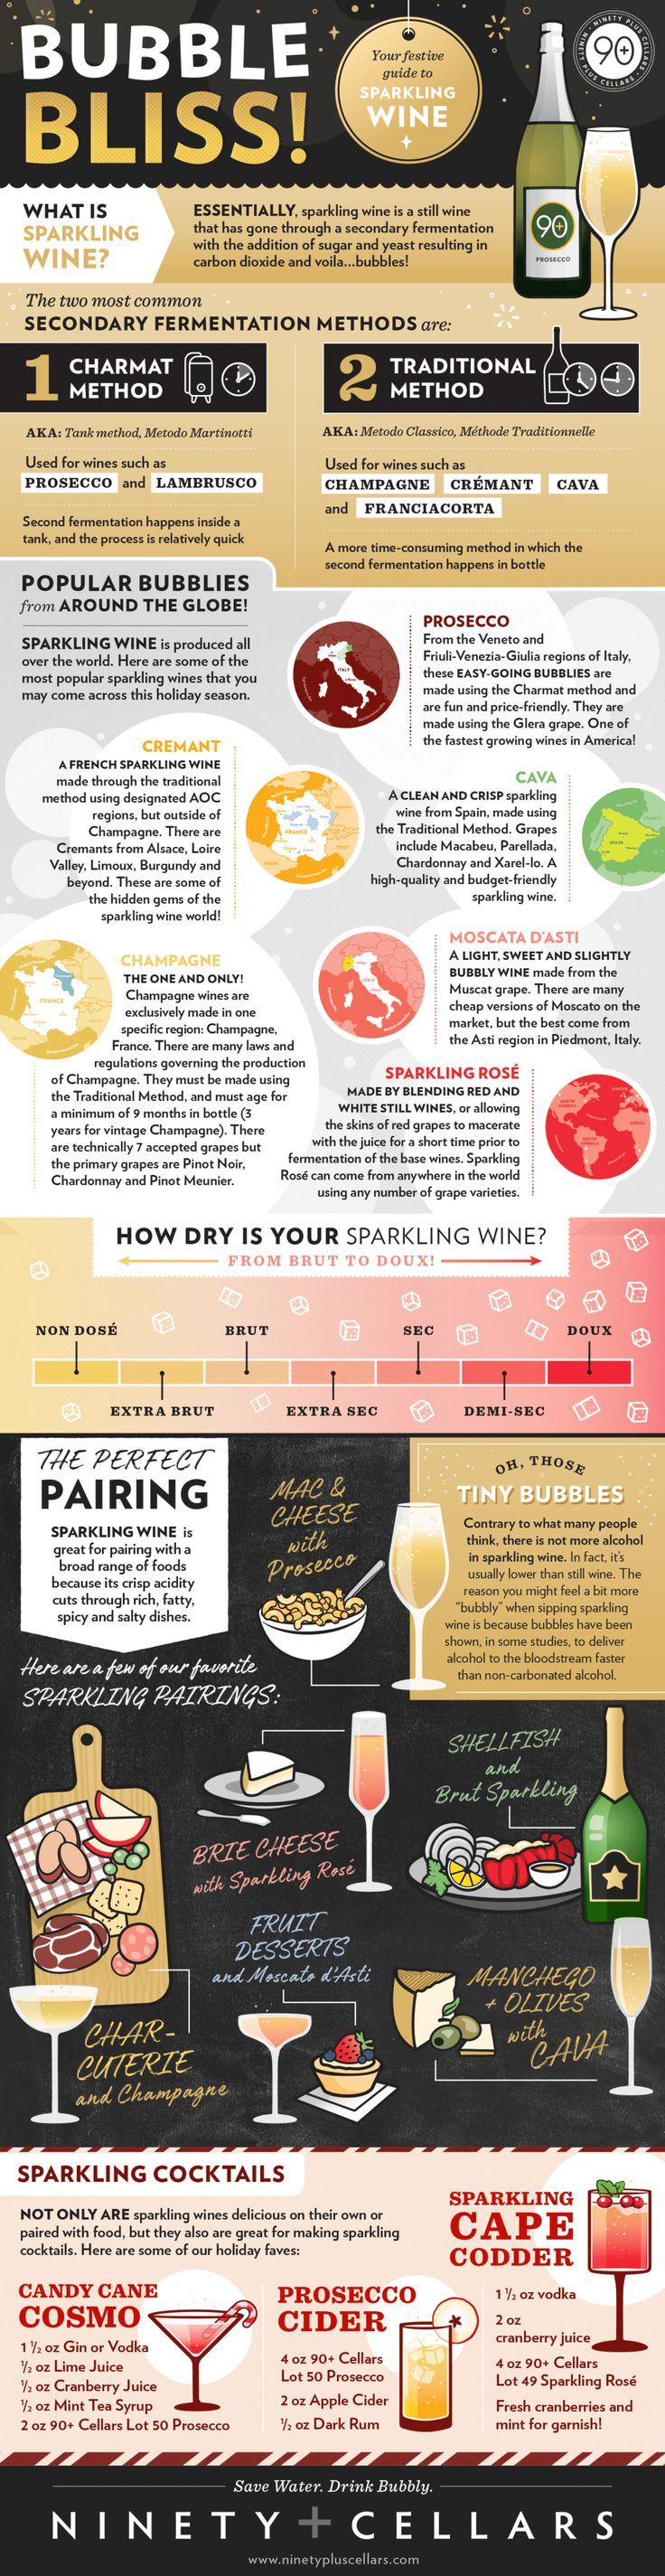 Prosecco, Moscato, Champagne… oh my! Get ready for the holidays with this festive guide to bubble bliss. From pairings, to cocktails, to production methods and sweetness, we've got you covered! Trust us, with all of this great sparkling wine knowledge you'll be the sparkle of the party!